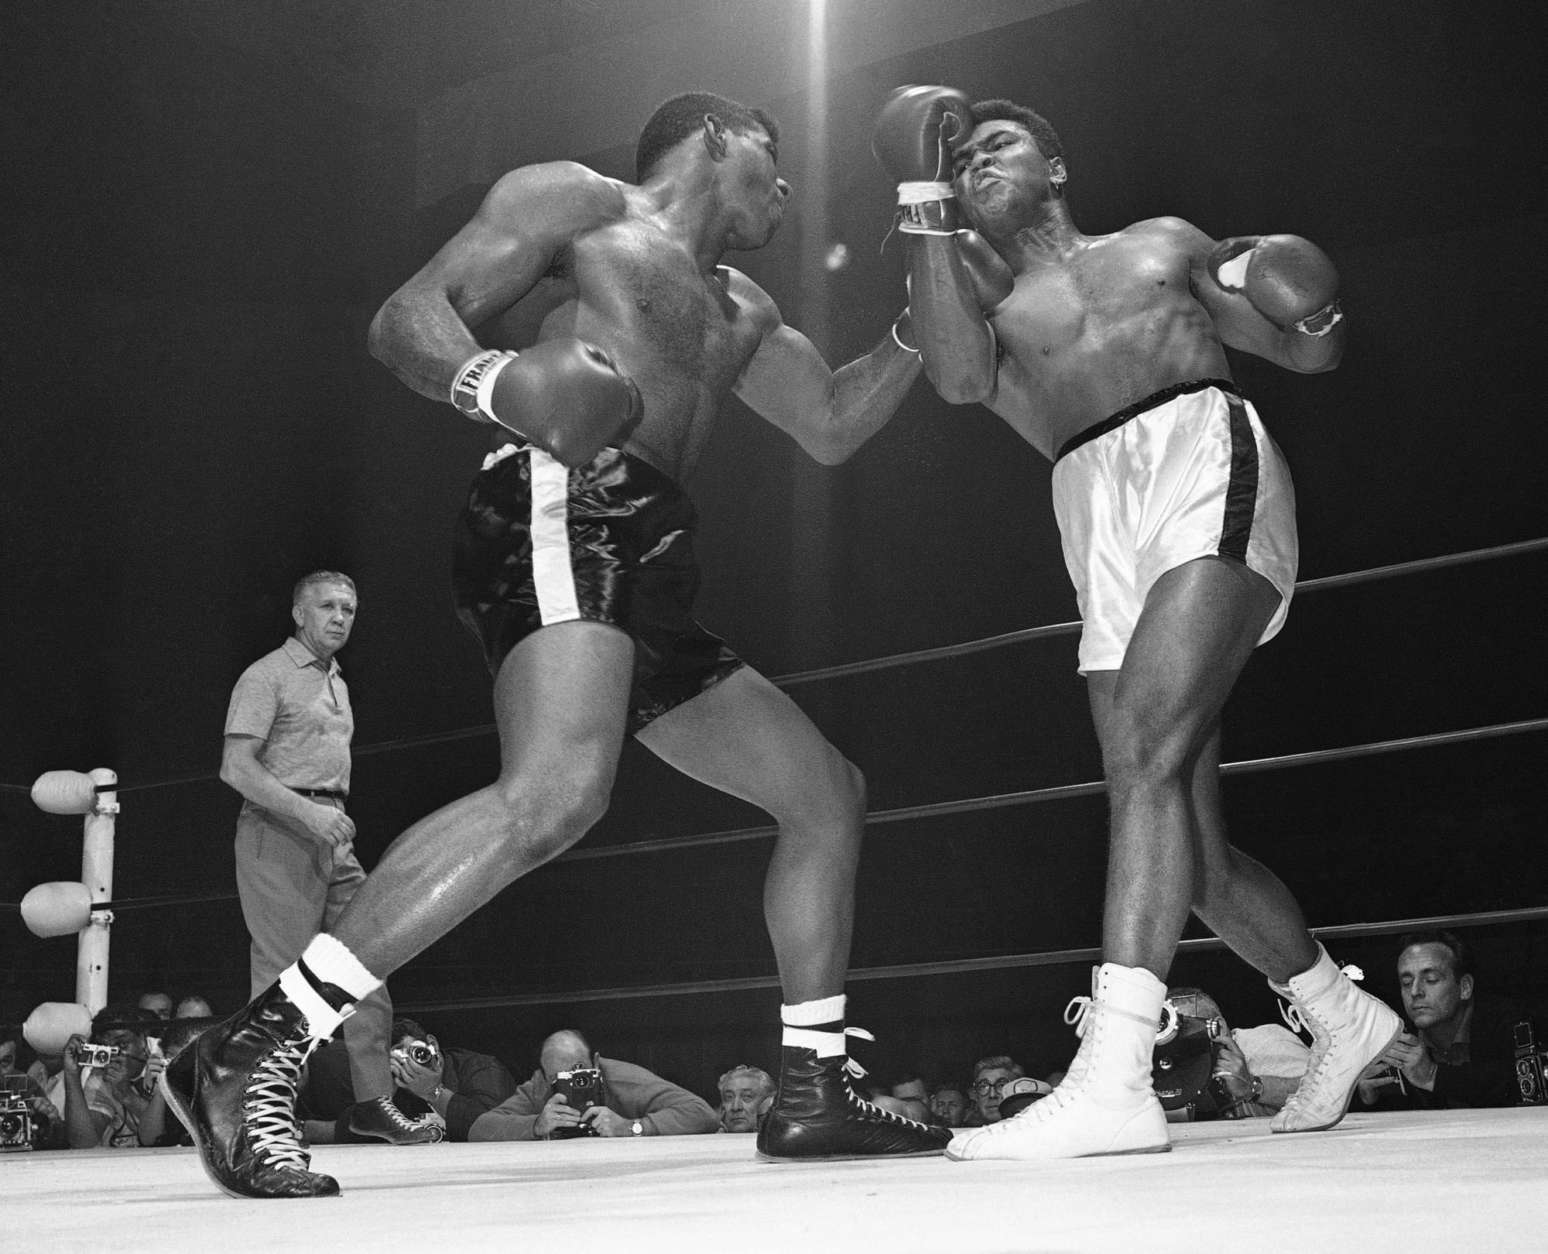 FIULE - In this Nov. 22, 1965, file photo, challenger Floyd Paterson, left, delivers a left hook to the chin of champion Muhammad Ali during the second round of their heavyweight title fight in Las Vegas. Among the questions Jonathan Eig wanted to answer in his upcoming biography of Ali was this: How many punches did Ali take during a career that ended with him devastated by Parkinson's? You'll have to wait until the book comes out to find out, though Ali himself once calculated the figure at 29,000. (AP Photo, File)